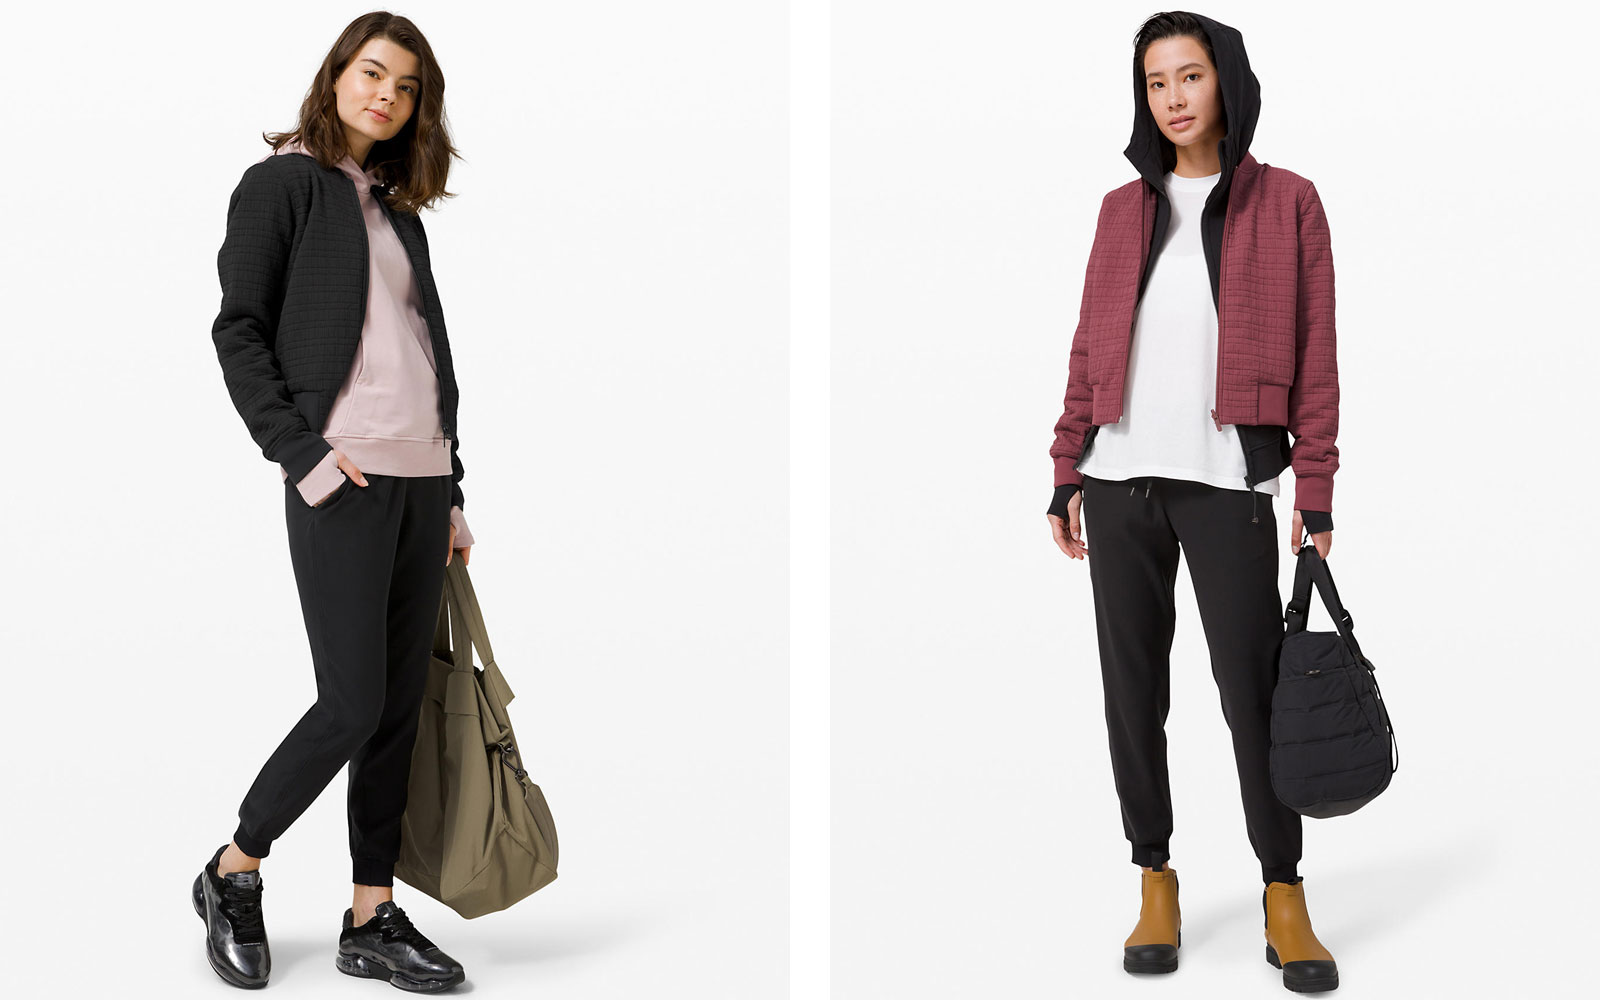 Two models wearing bomber jackets